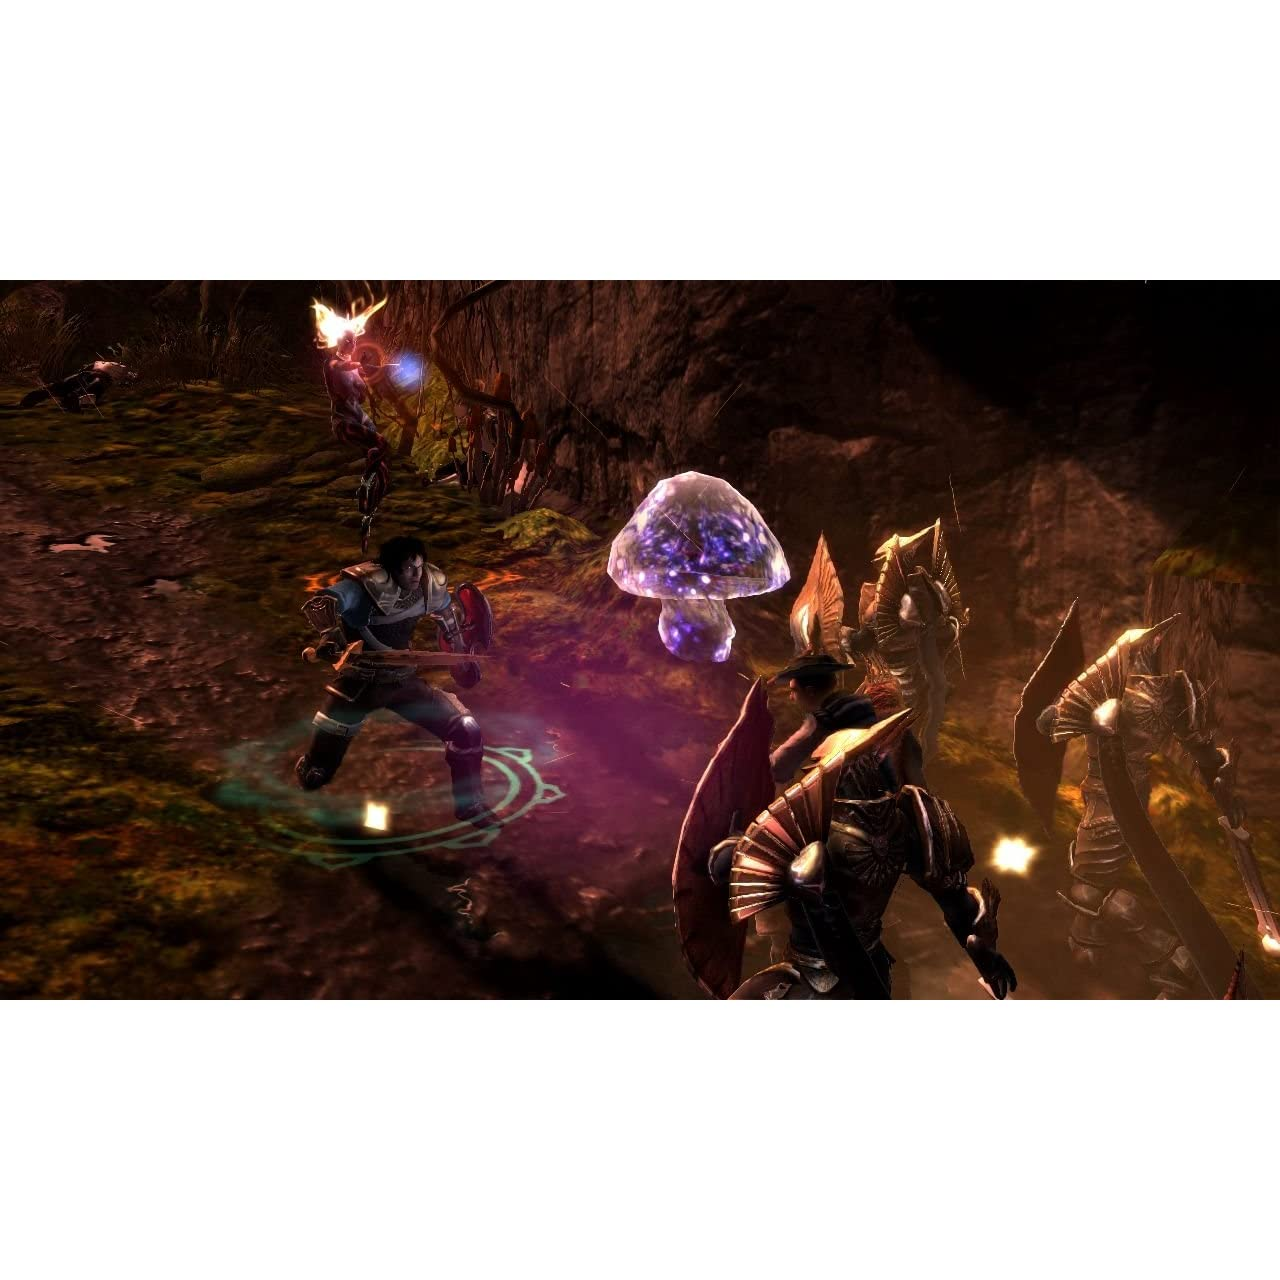 Online Game, Online Games, Video Game, Video Games, PlayStation 3, Xbox 360, PC, PC Download, rpg, Dungeon Crawler, Dungeon Siege 3